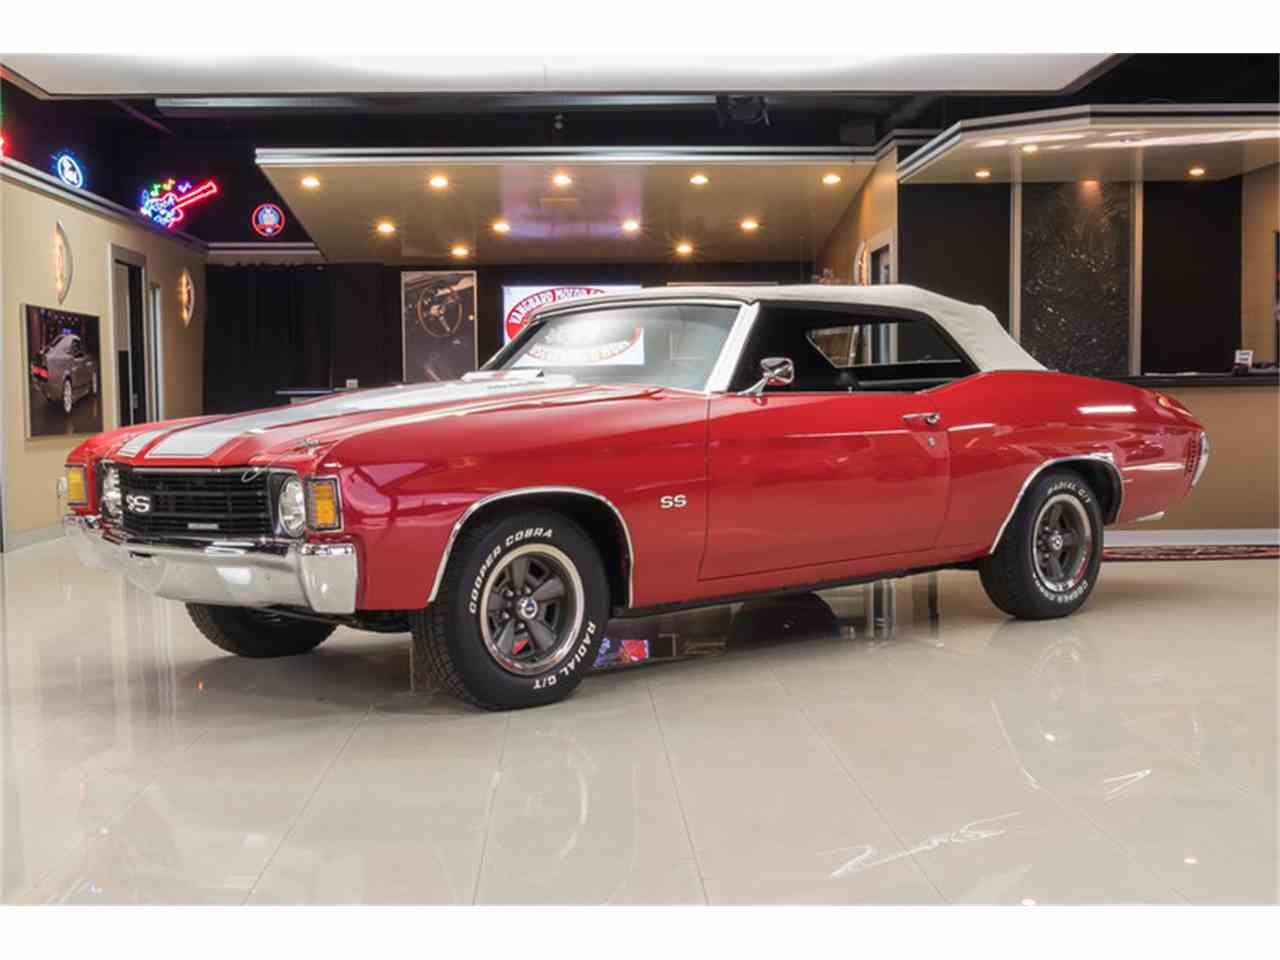 Large Picture of Classic 1972 Chevrolet Chevelle located in Michigan - $62,900.00 - LVMB